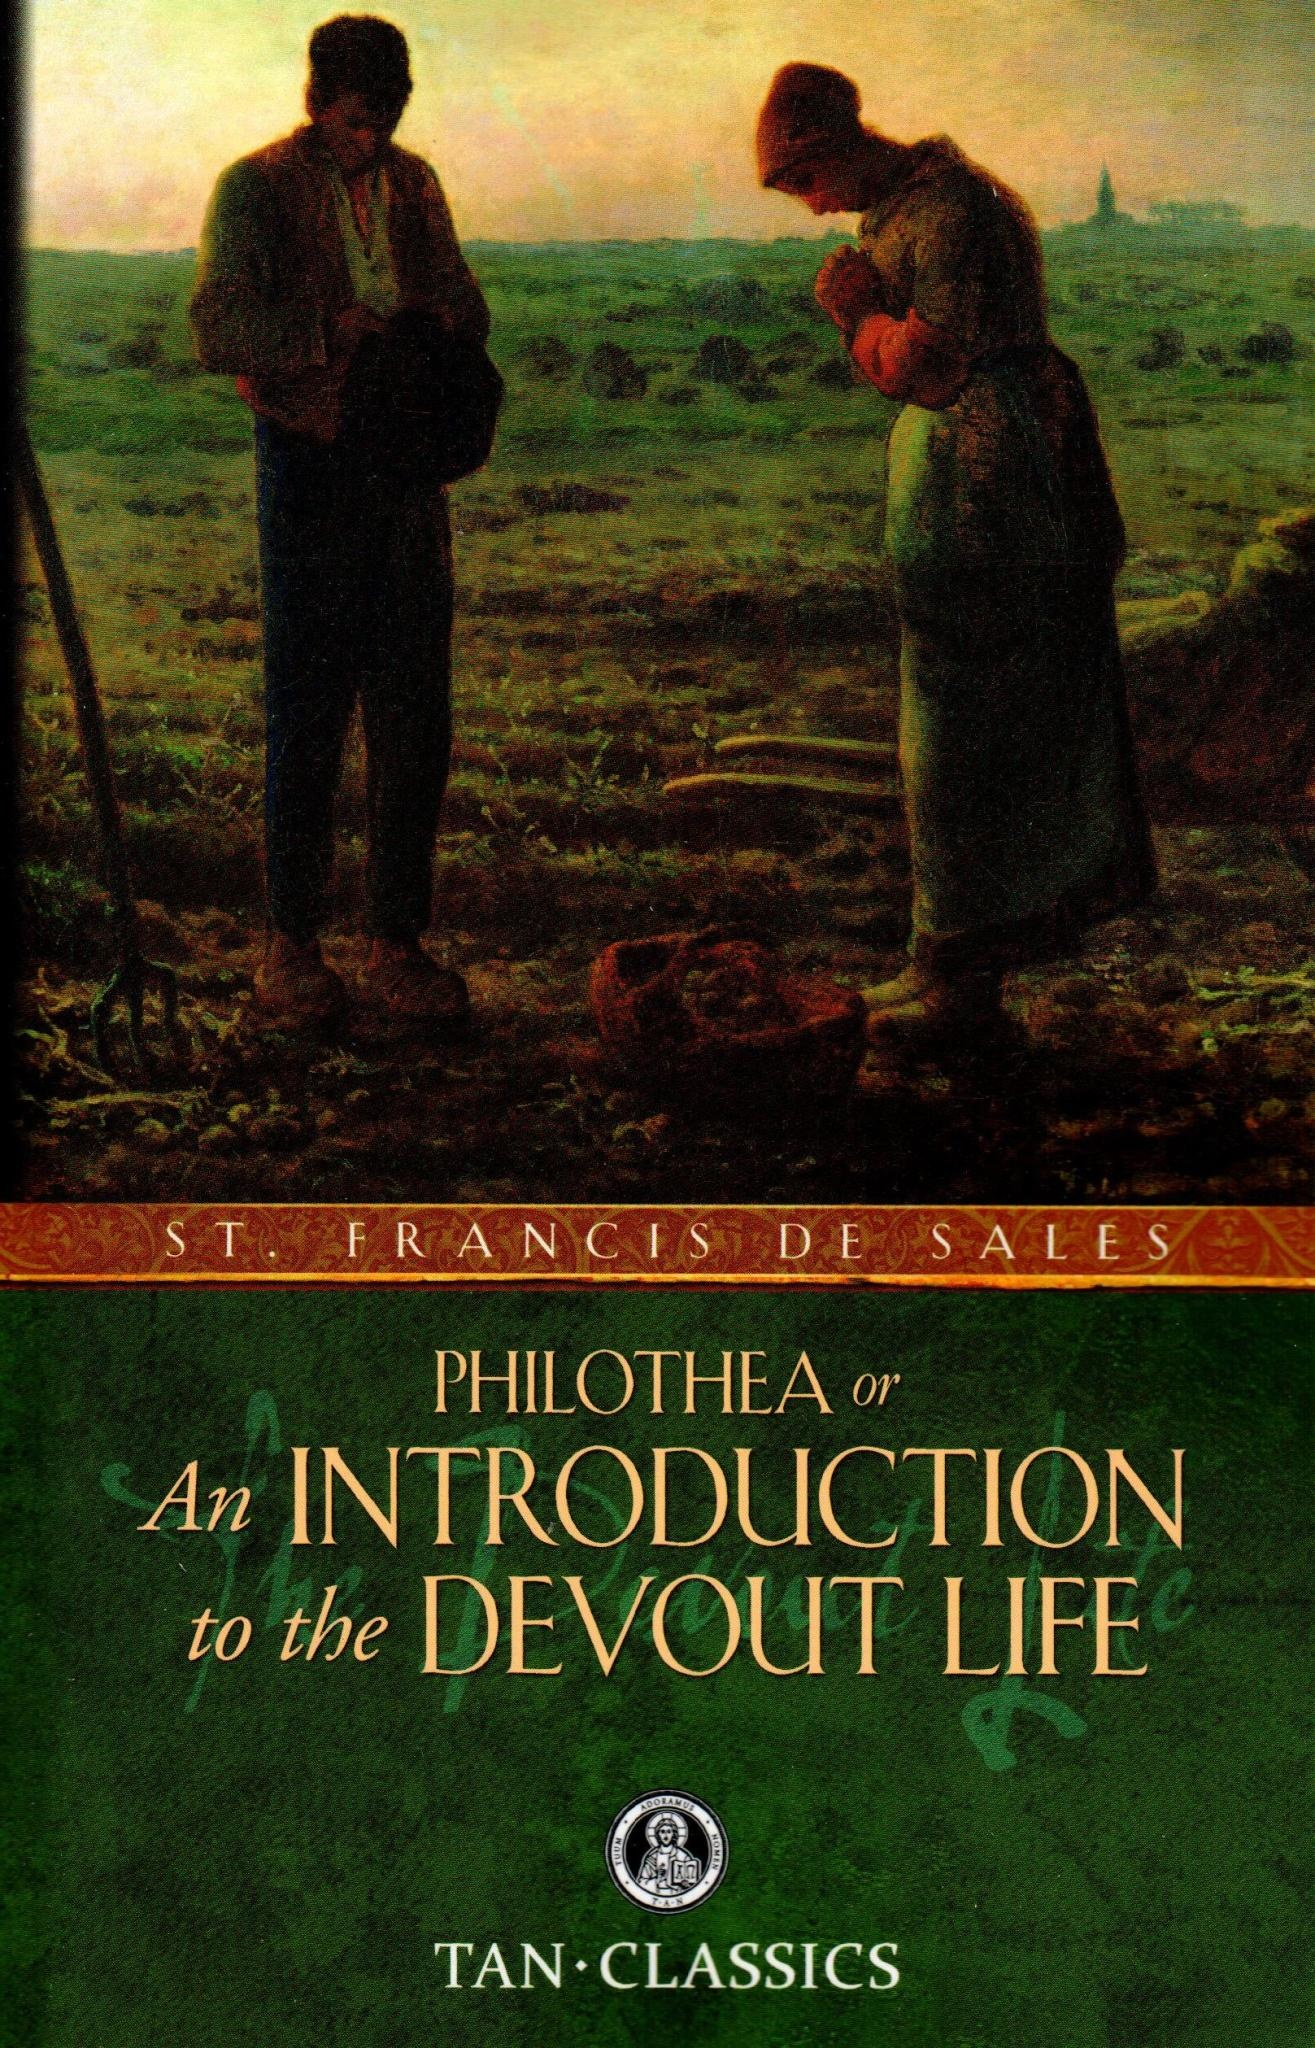 Philothea or An Introduction to the Devout Life